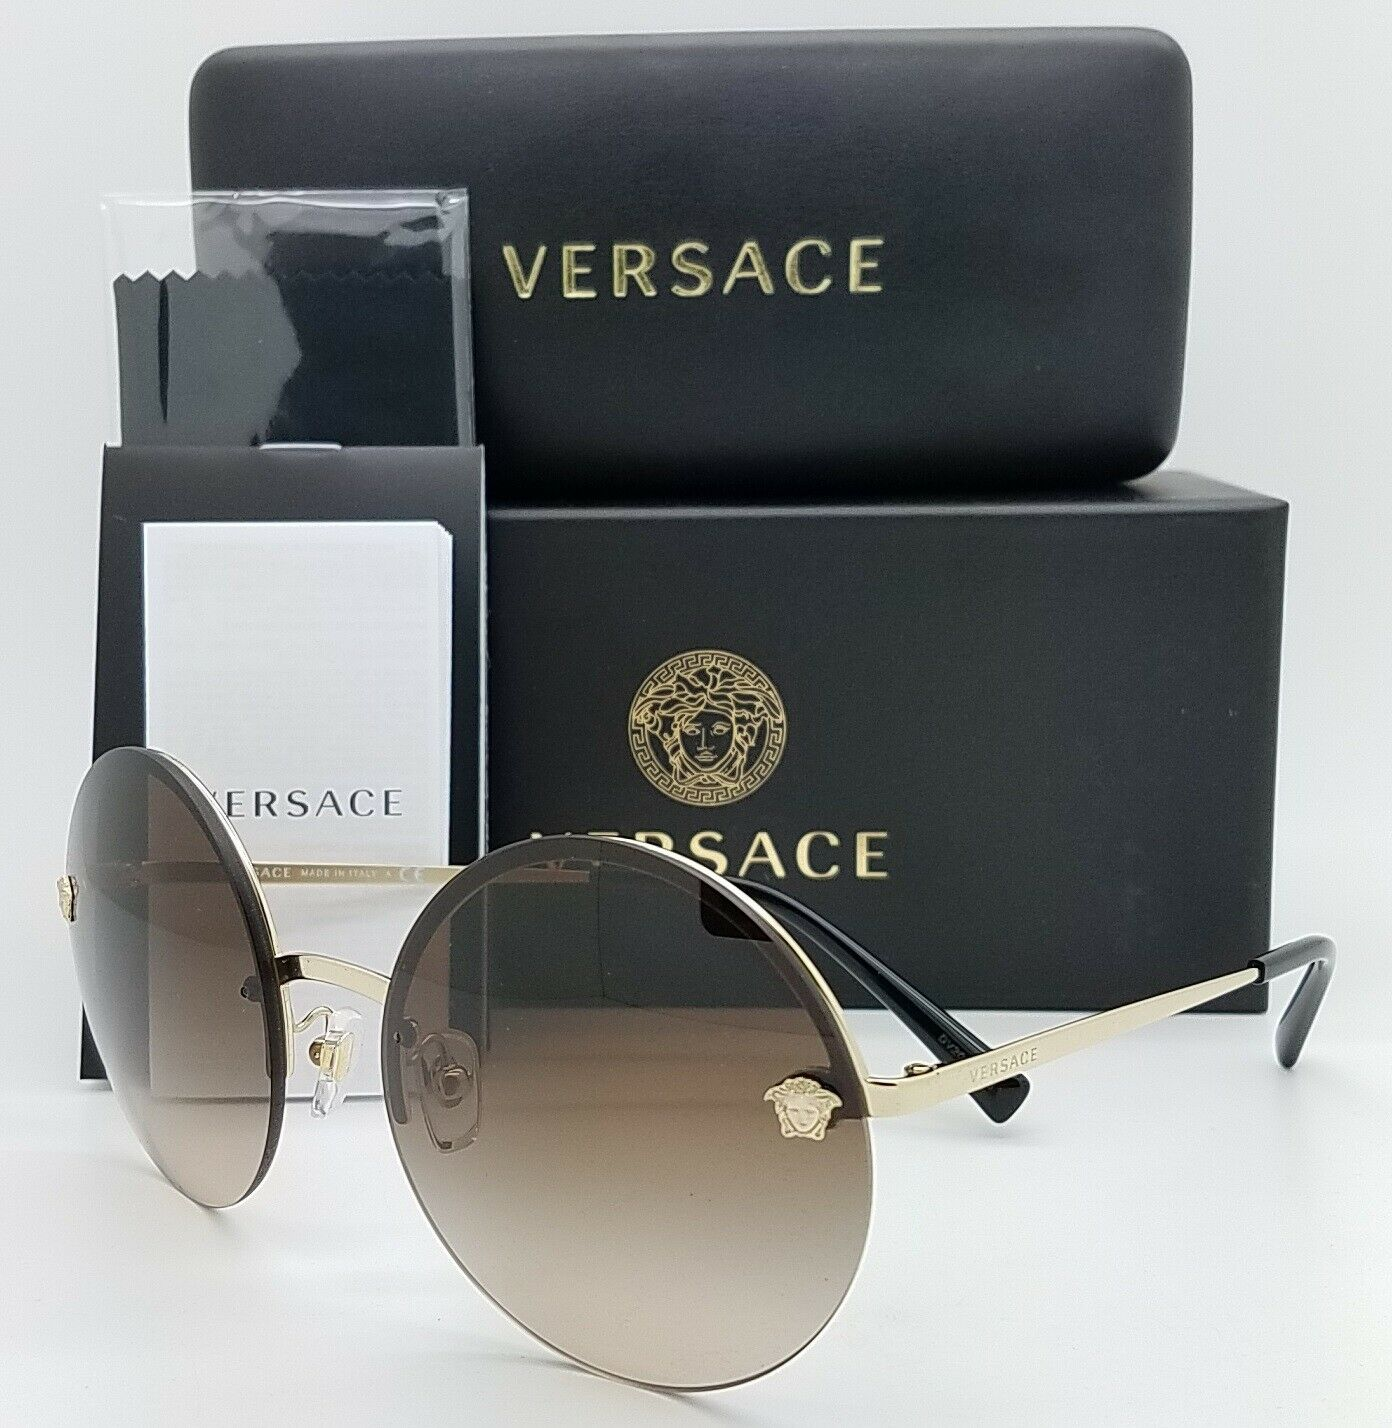 NEW Versace sunglasses VE2176 125213 59mm Gold Brown Gradient AUTHENTIC Round